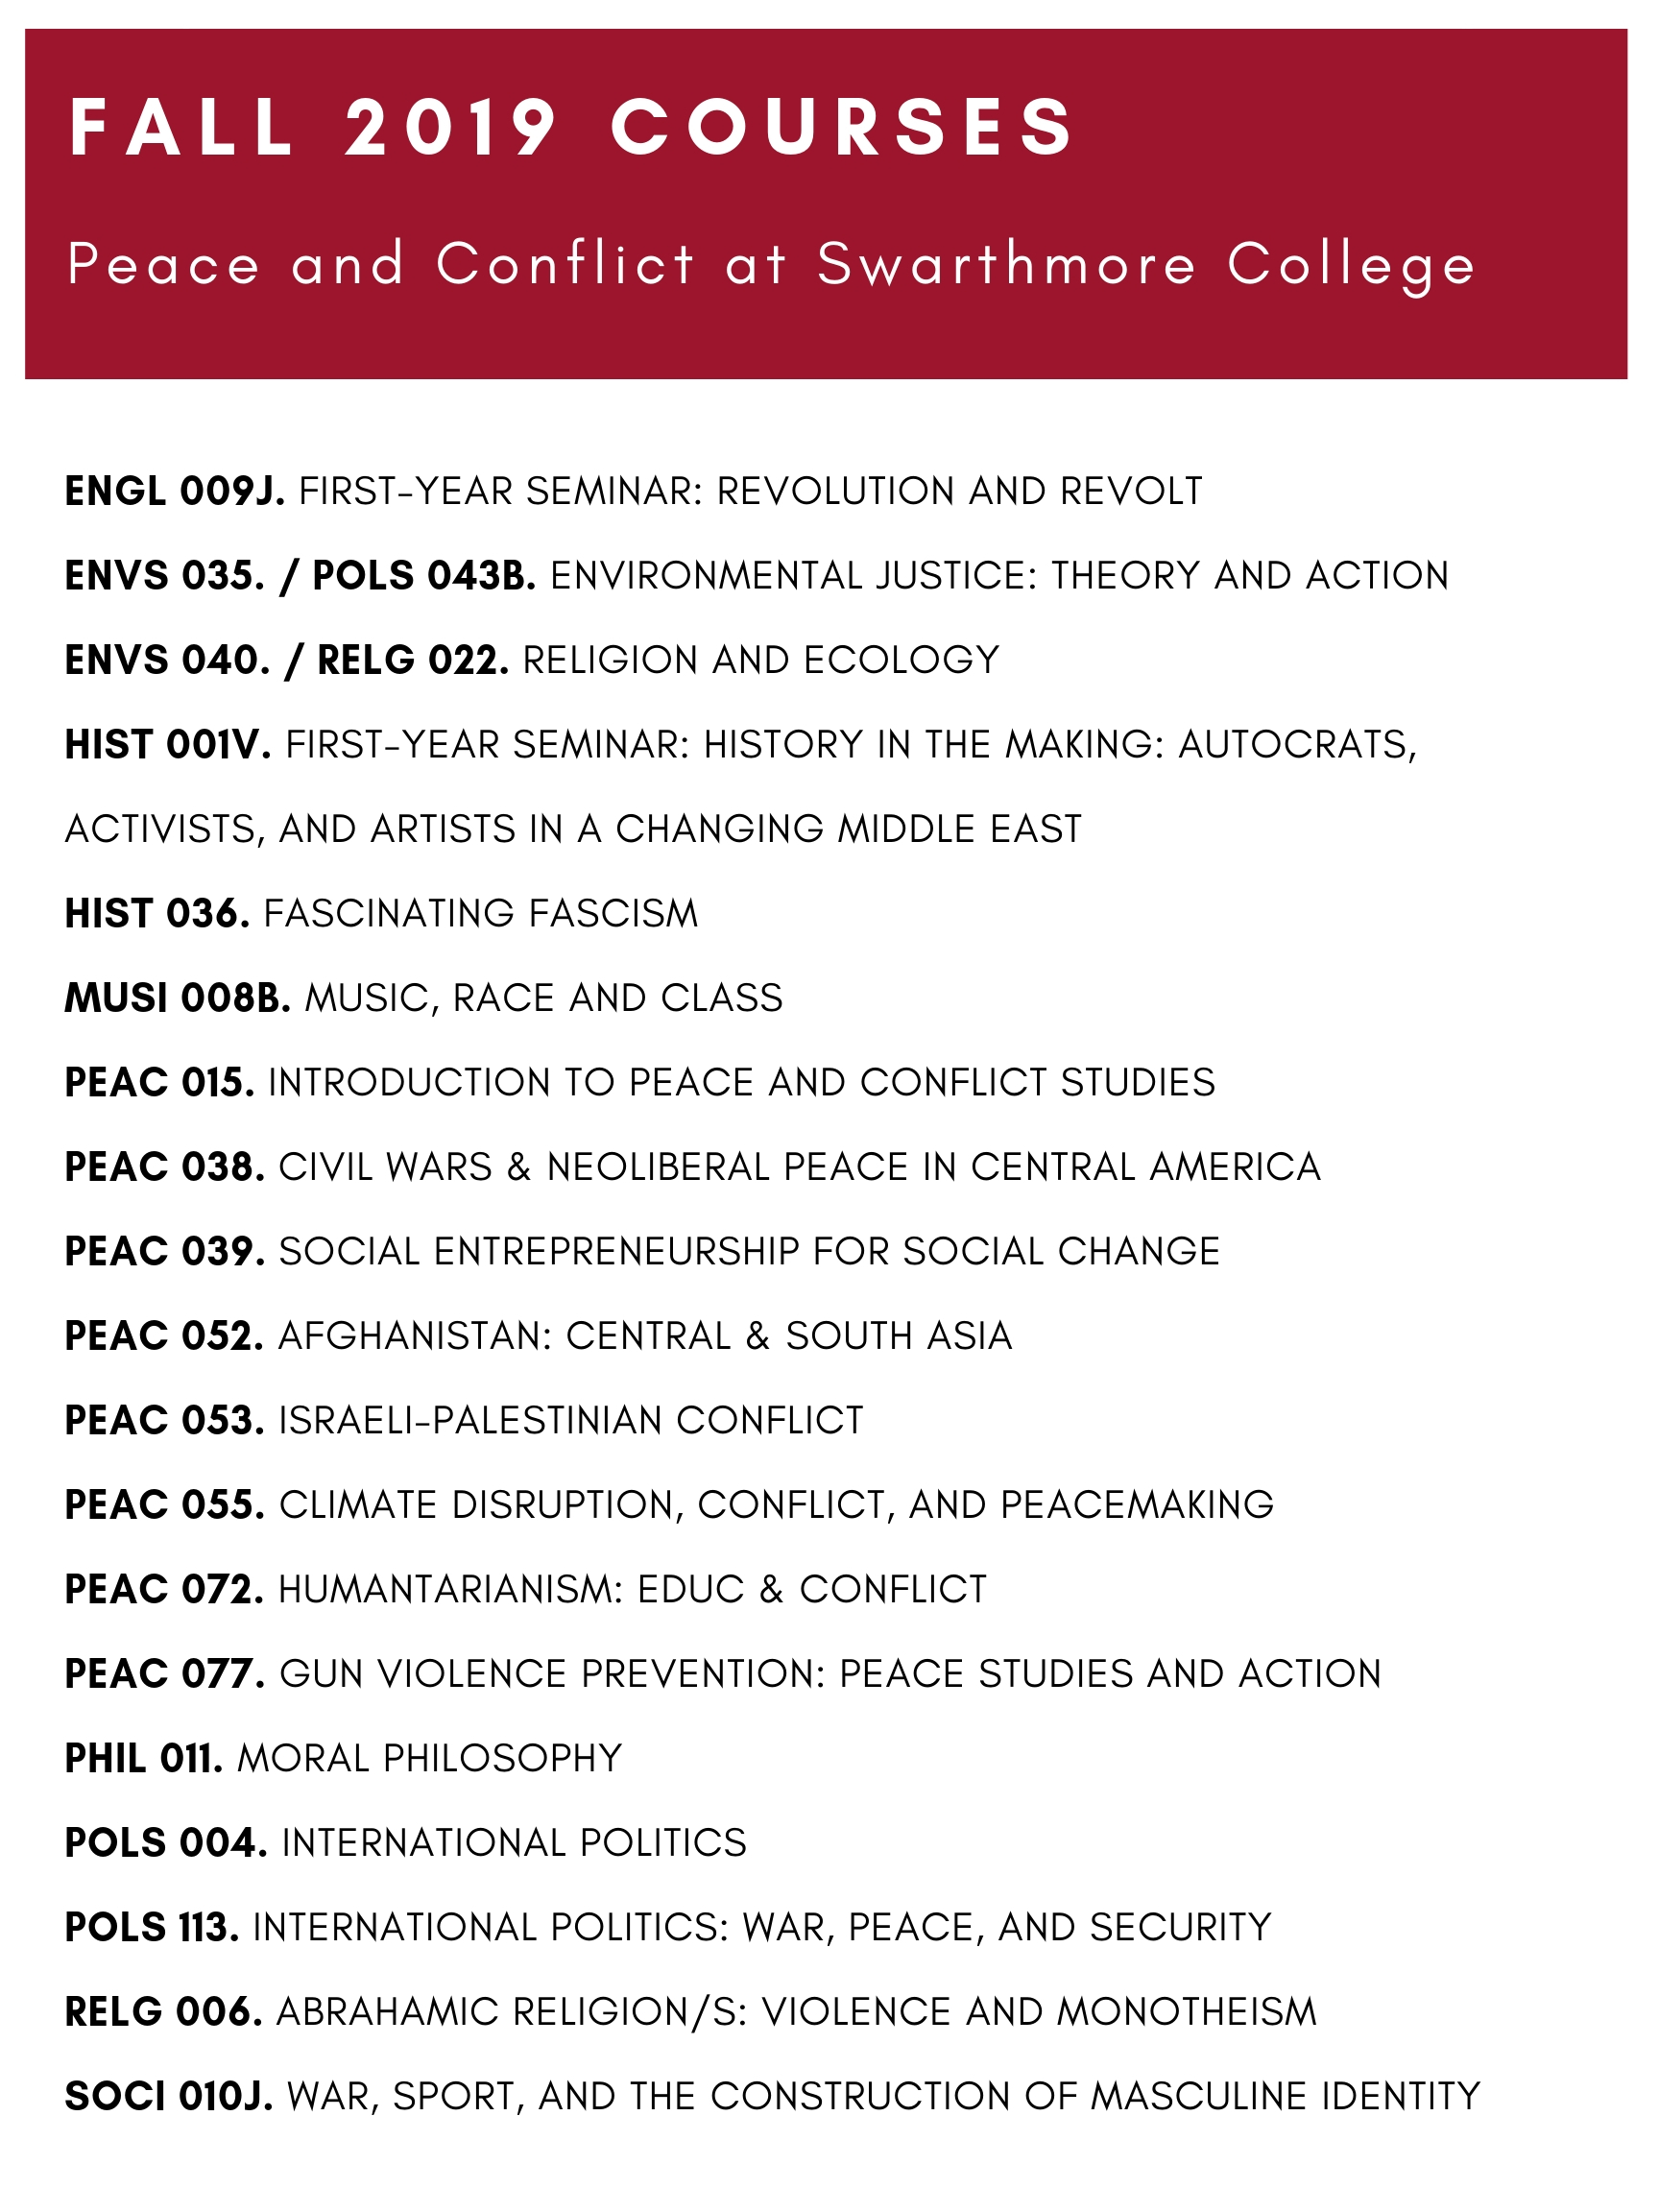 Fall Courses 2019 Peace and Conflict